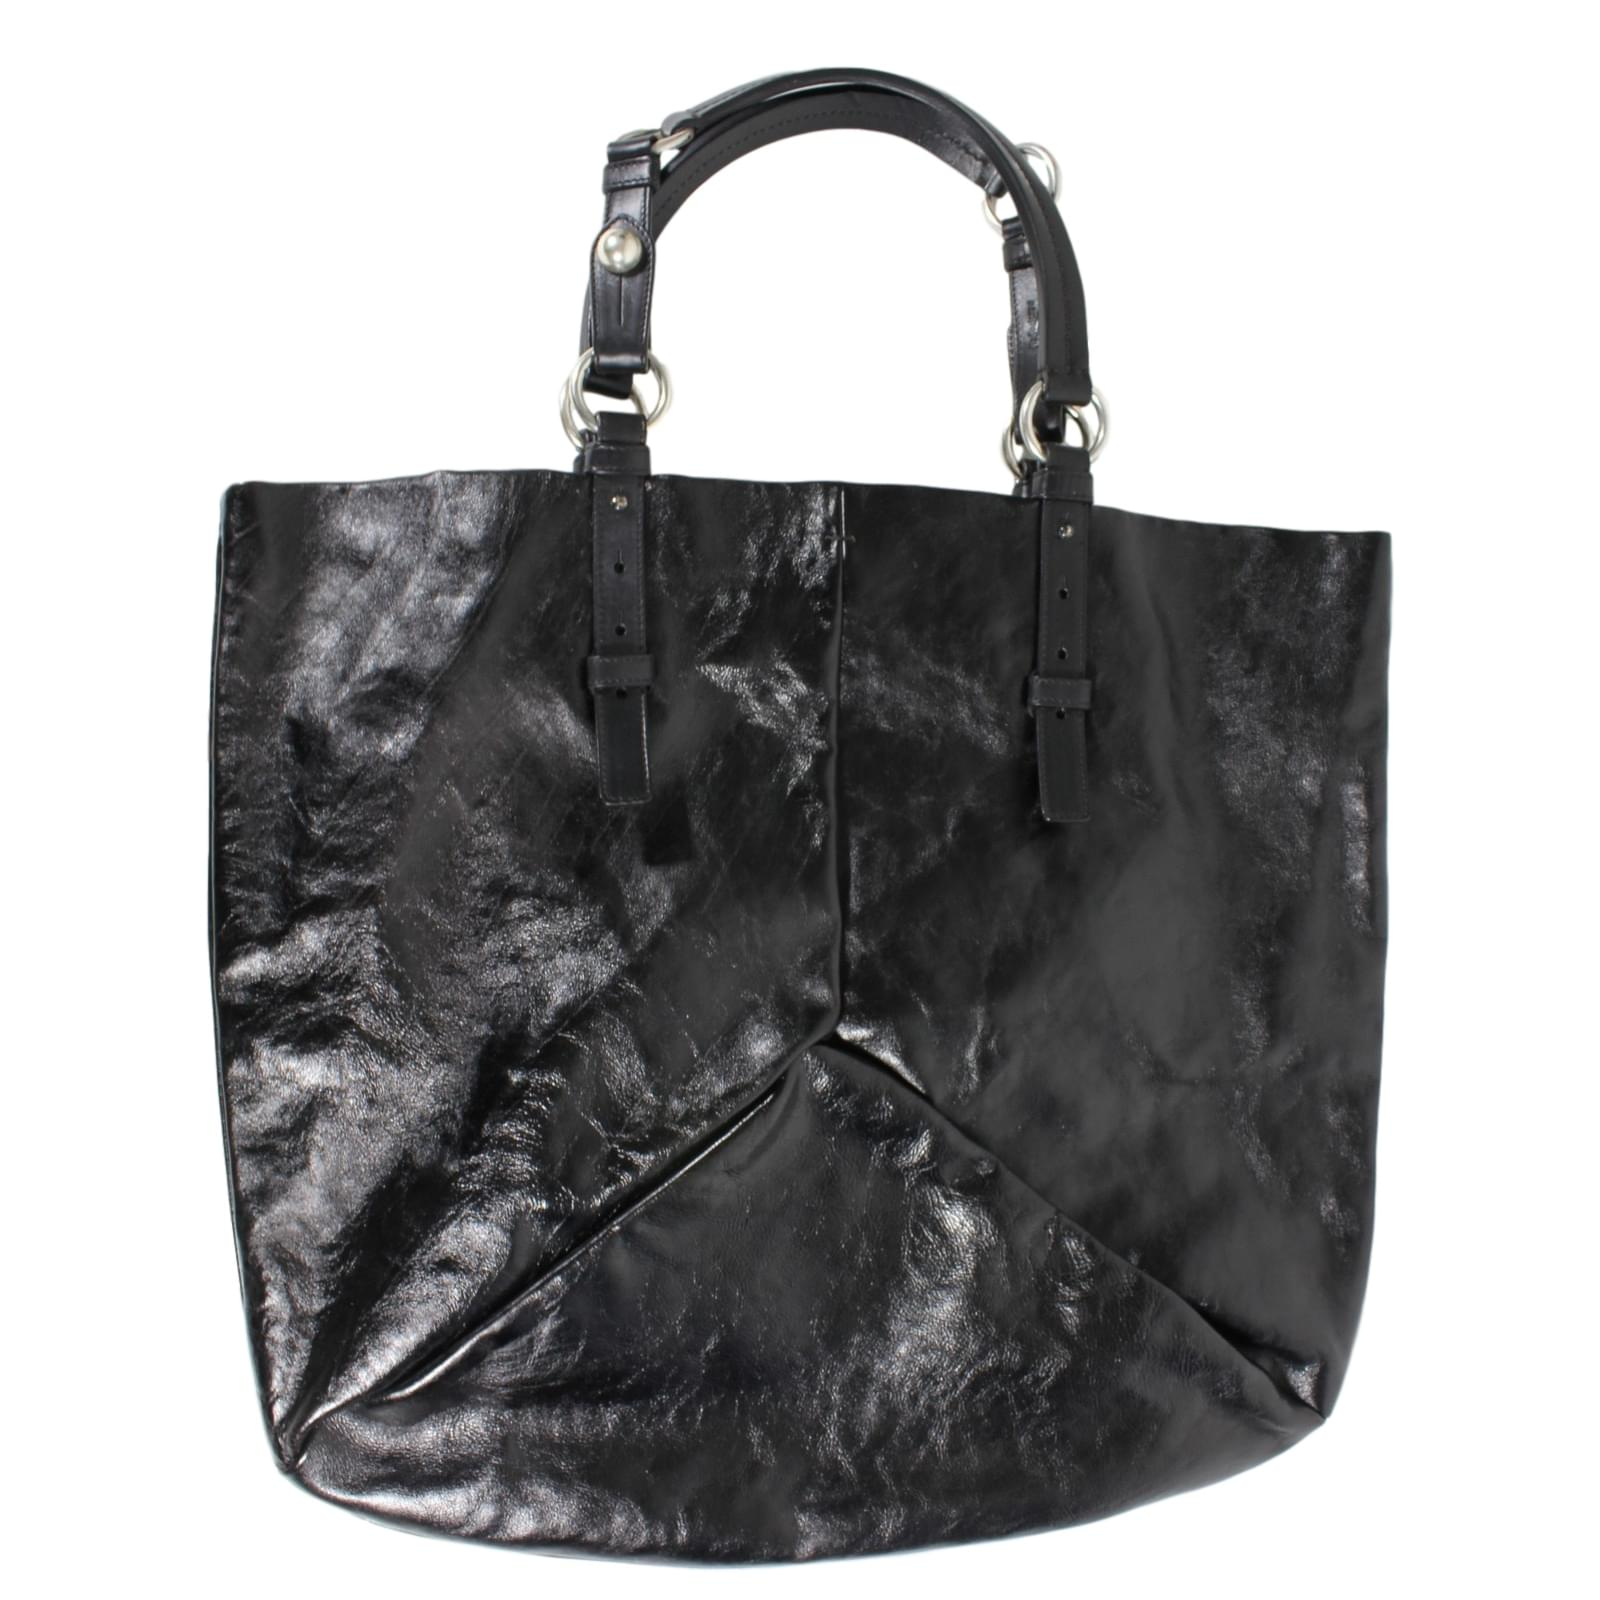 685d55b021f1 ... Yves Saint Laurent Totes Totes Leather Brown ref.12741 super specials  b8186 fd72e ...